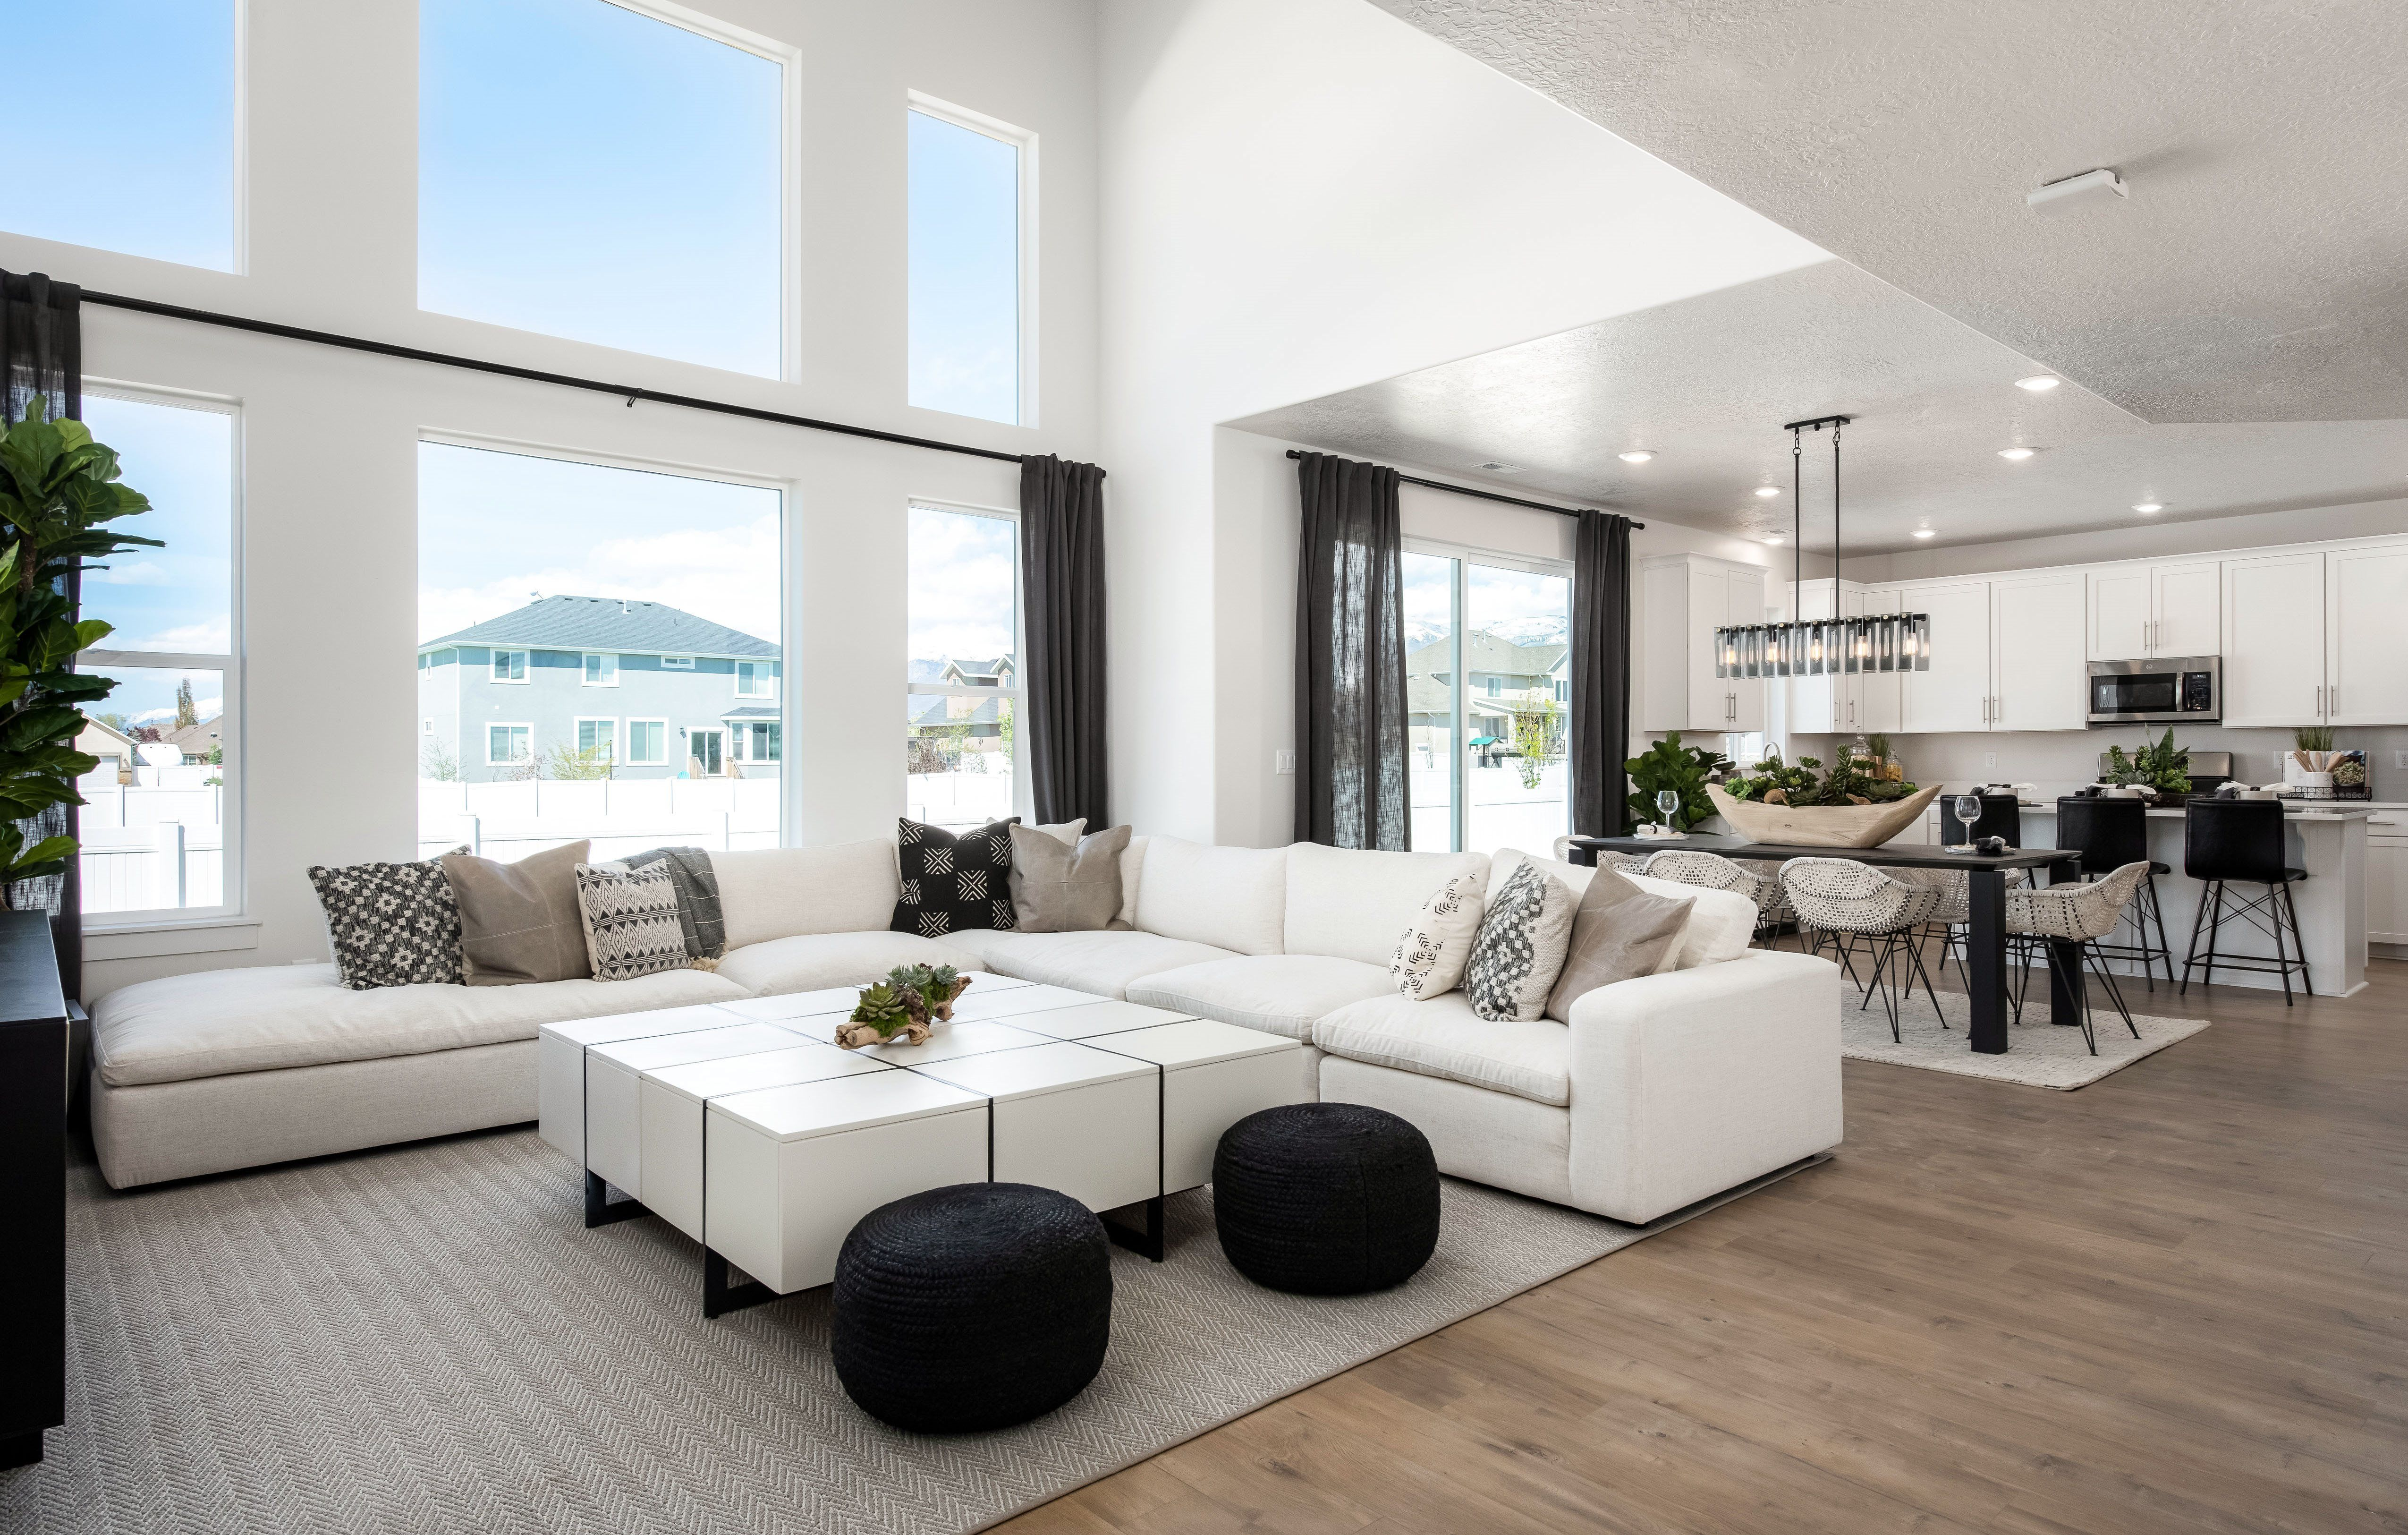 Do You Love All The Natural Light In This Living Space In